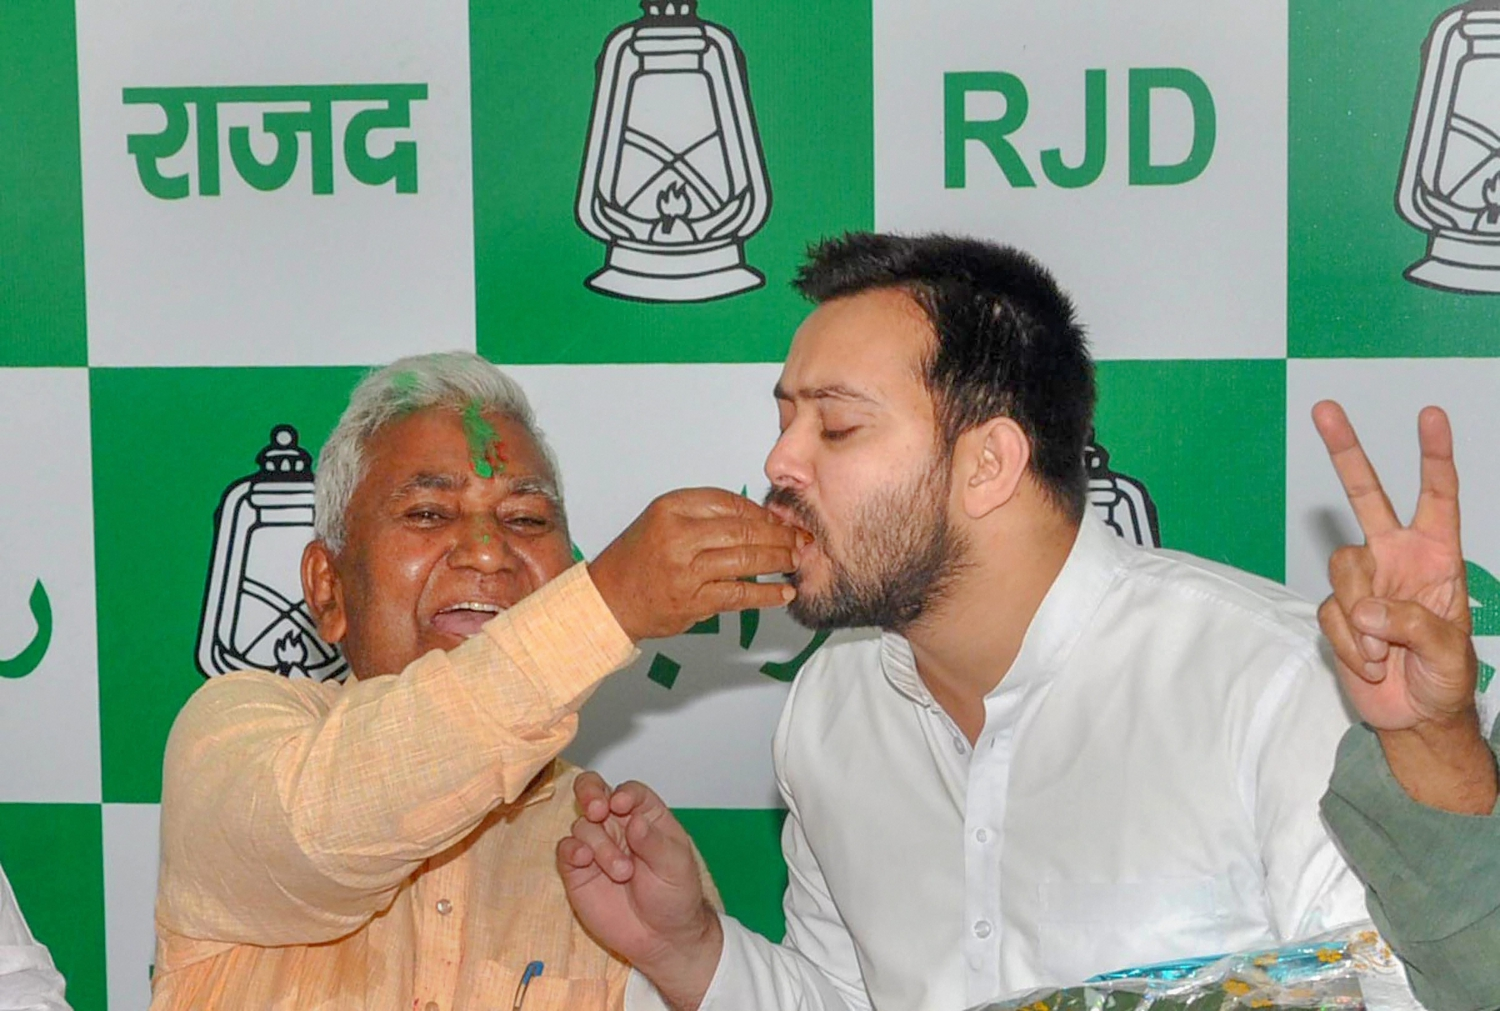 RJD leader Tejashwi Yadav is offered sweets by RJD state president Ramchandra Purbey to celebrate party's win in Jokihat Assembly by-election seat, in Patna on Thursday, May 31, 2018. Credit: PTI